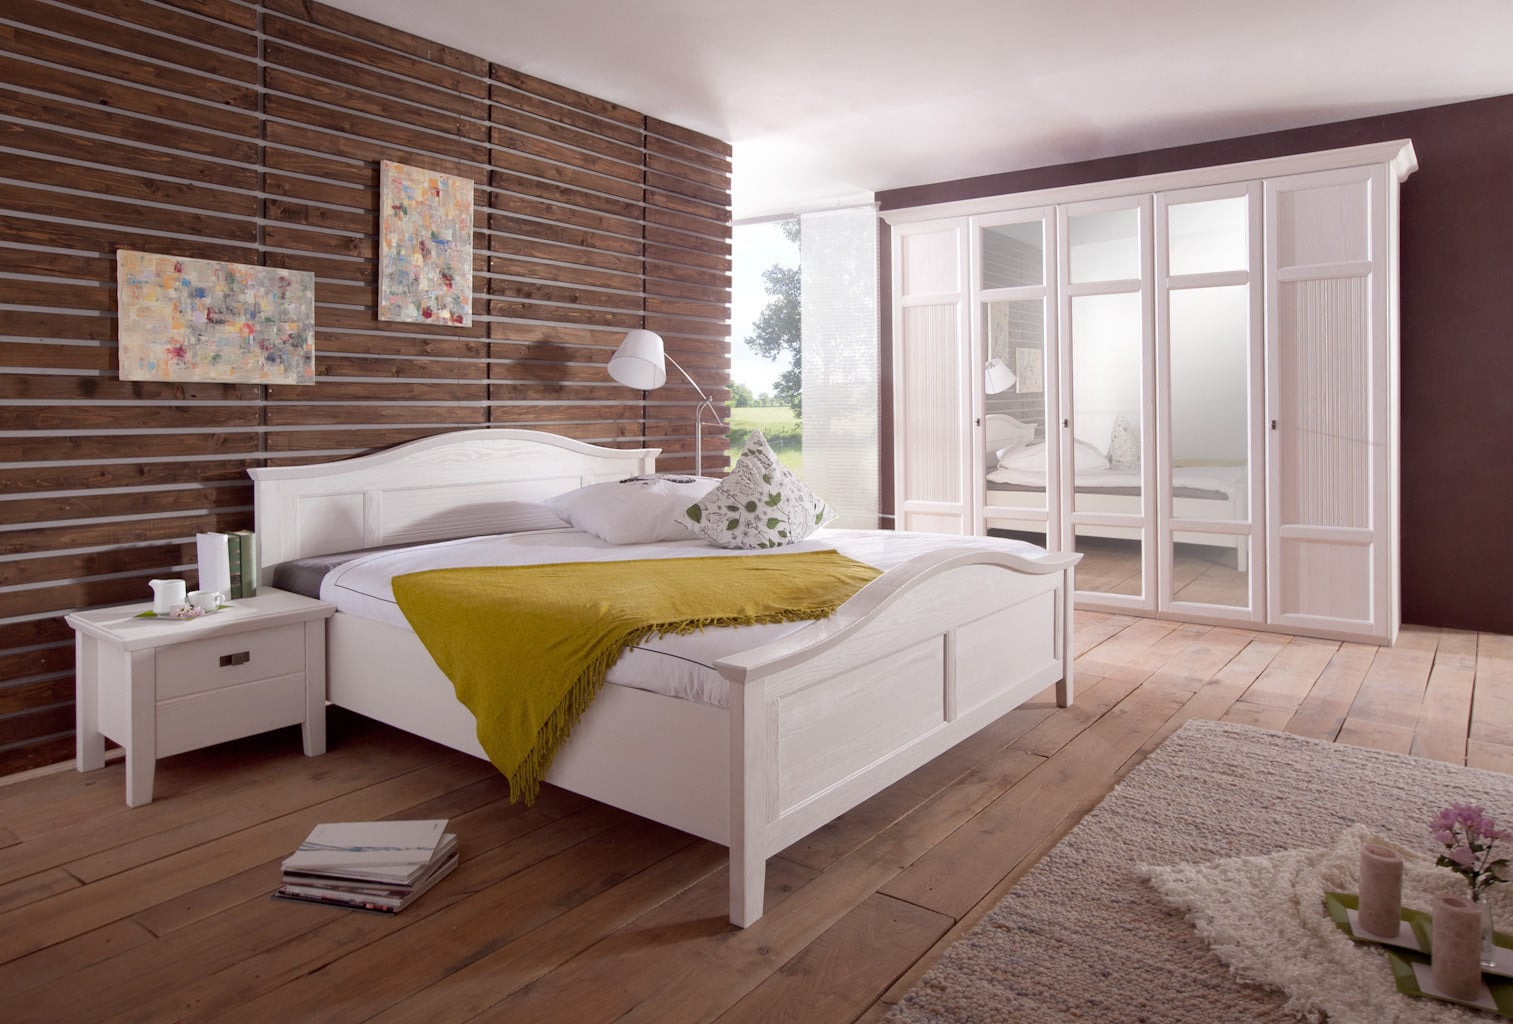 schlafzimmer komplett rome pinie weiss pick up m bel. Black Bedroom Furniture Sets. Home Design Ideas